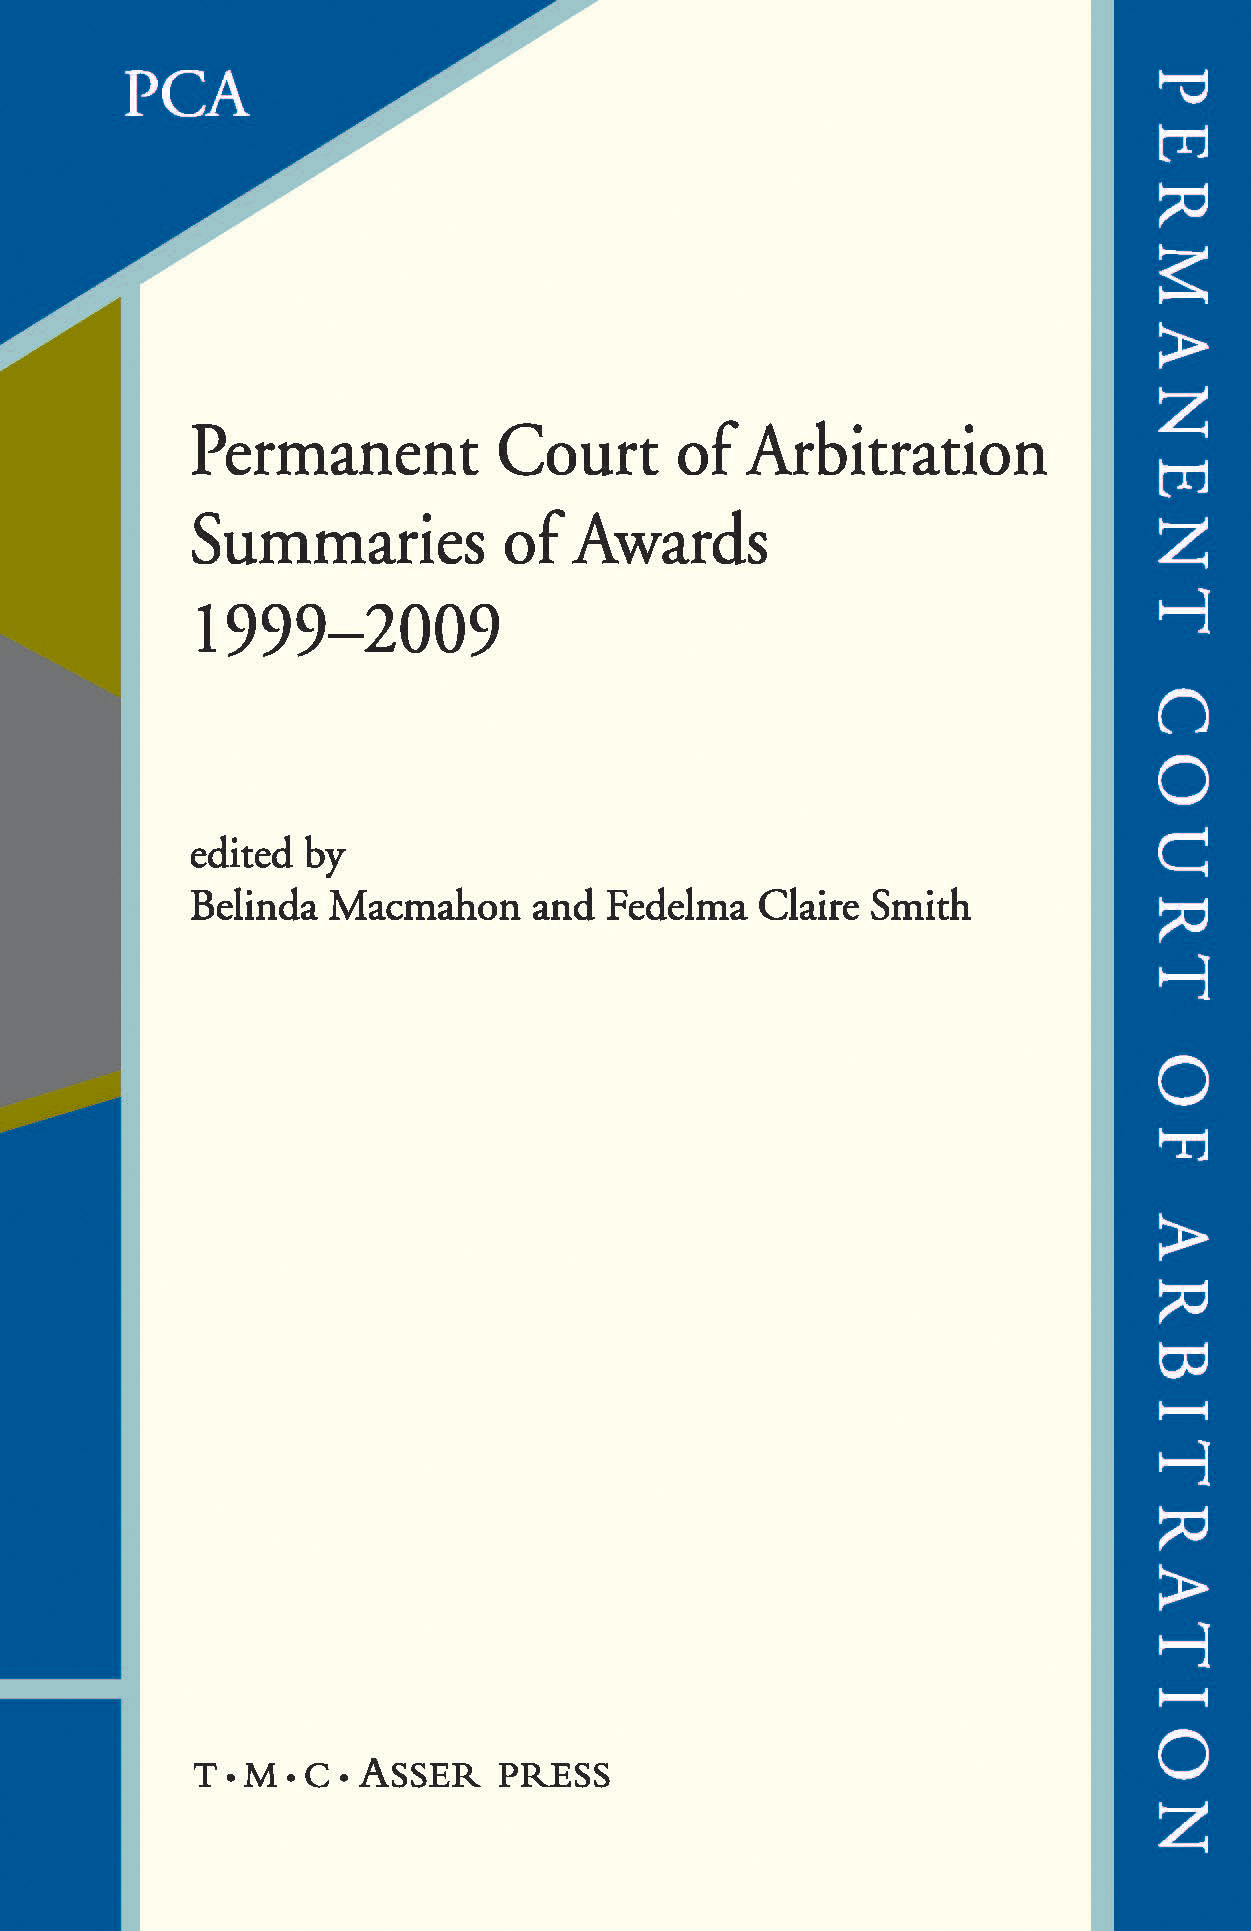 Permanent Court of Arbitration - Summaries of Awards 1999–2009